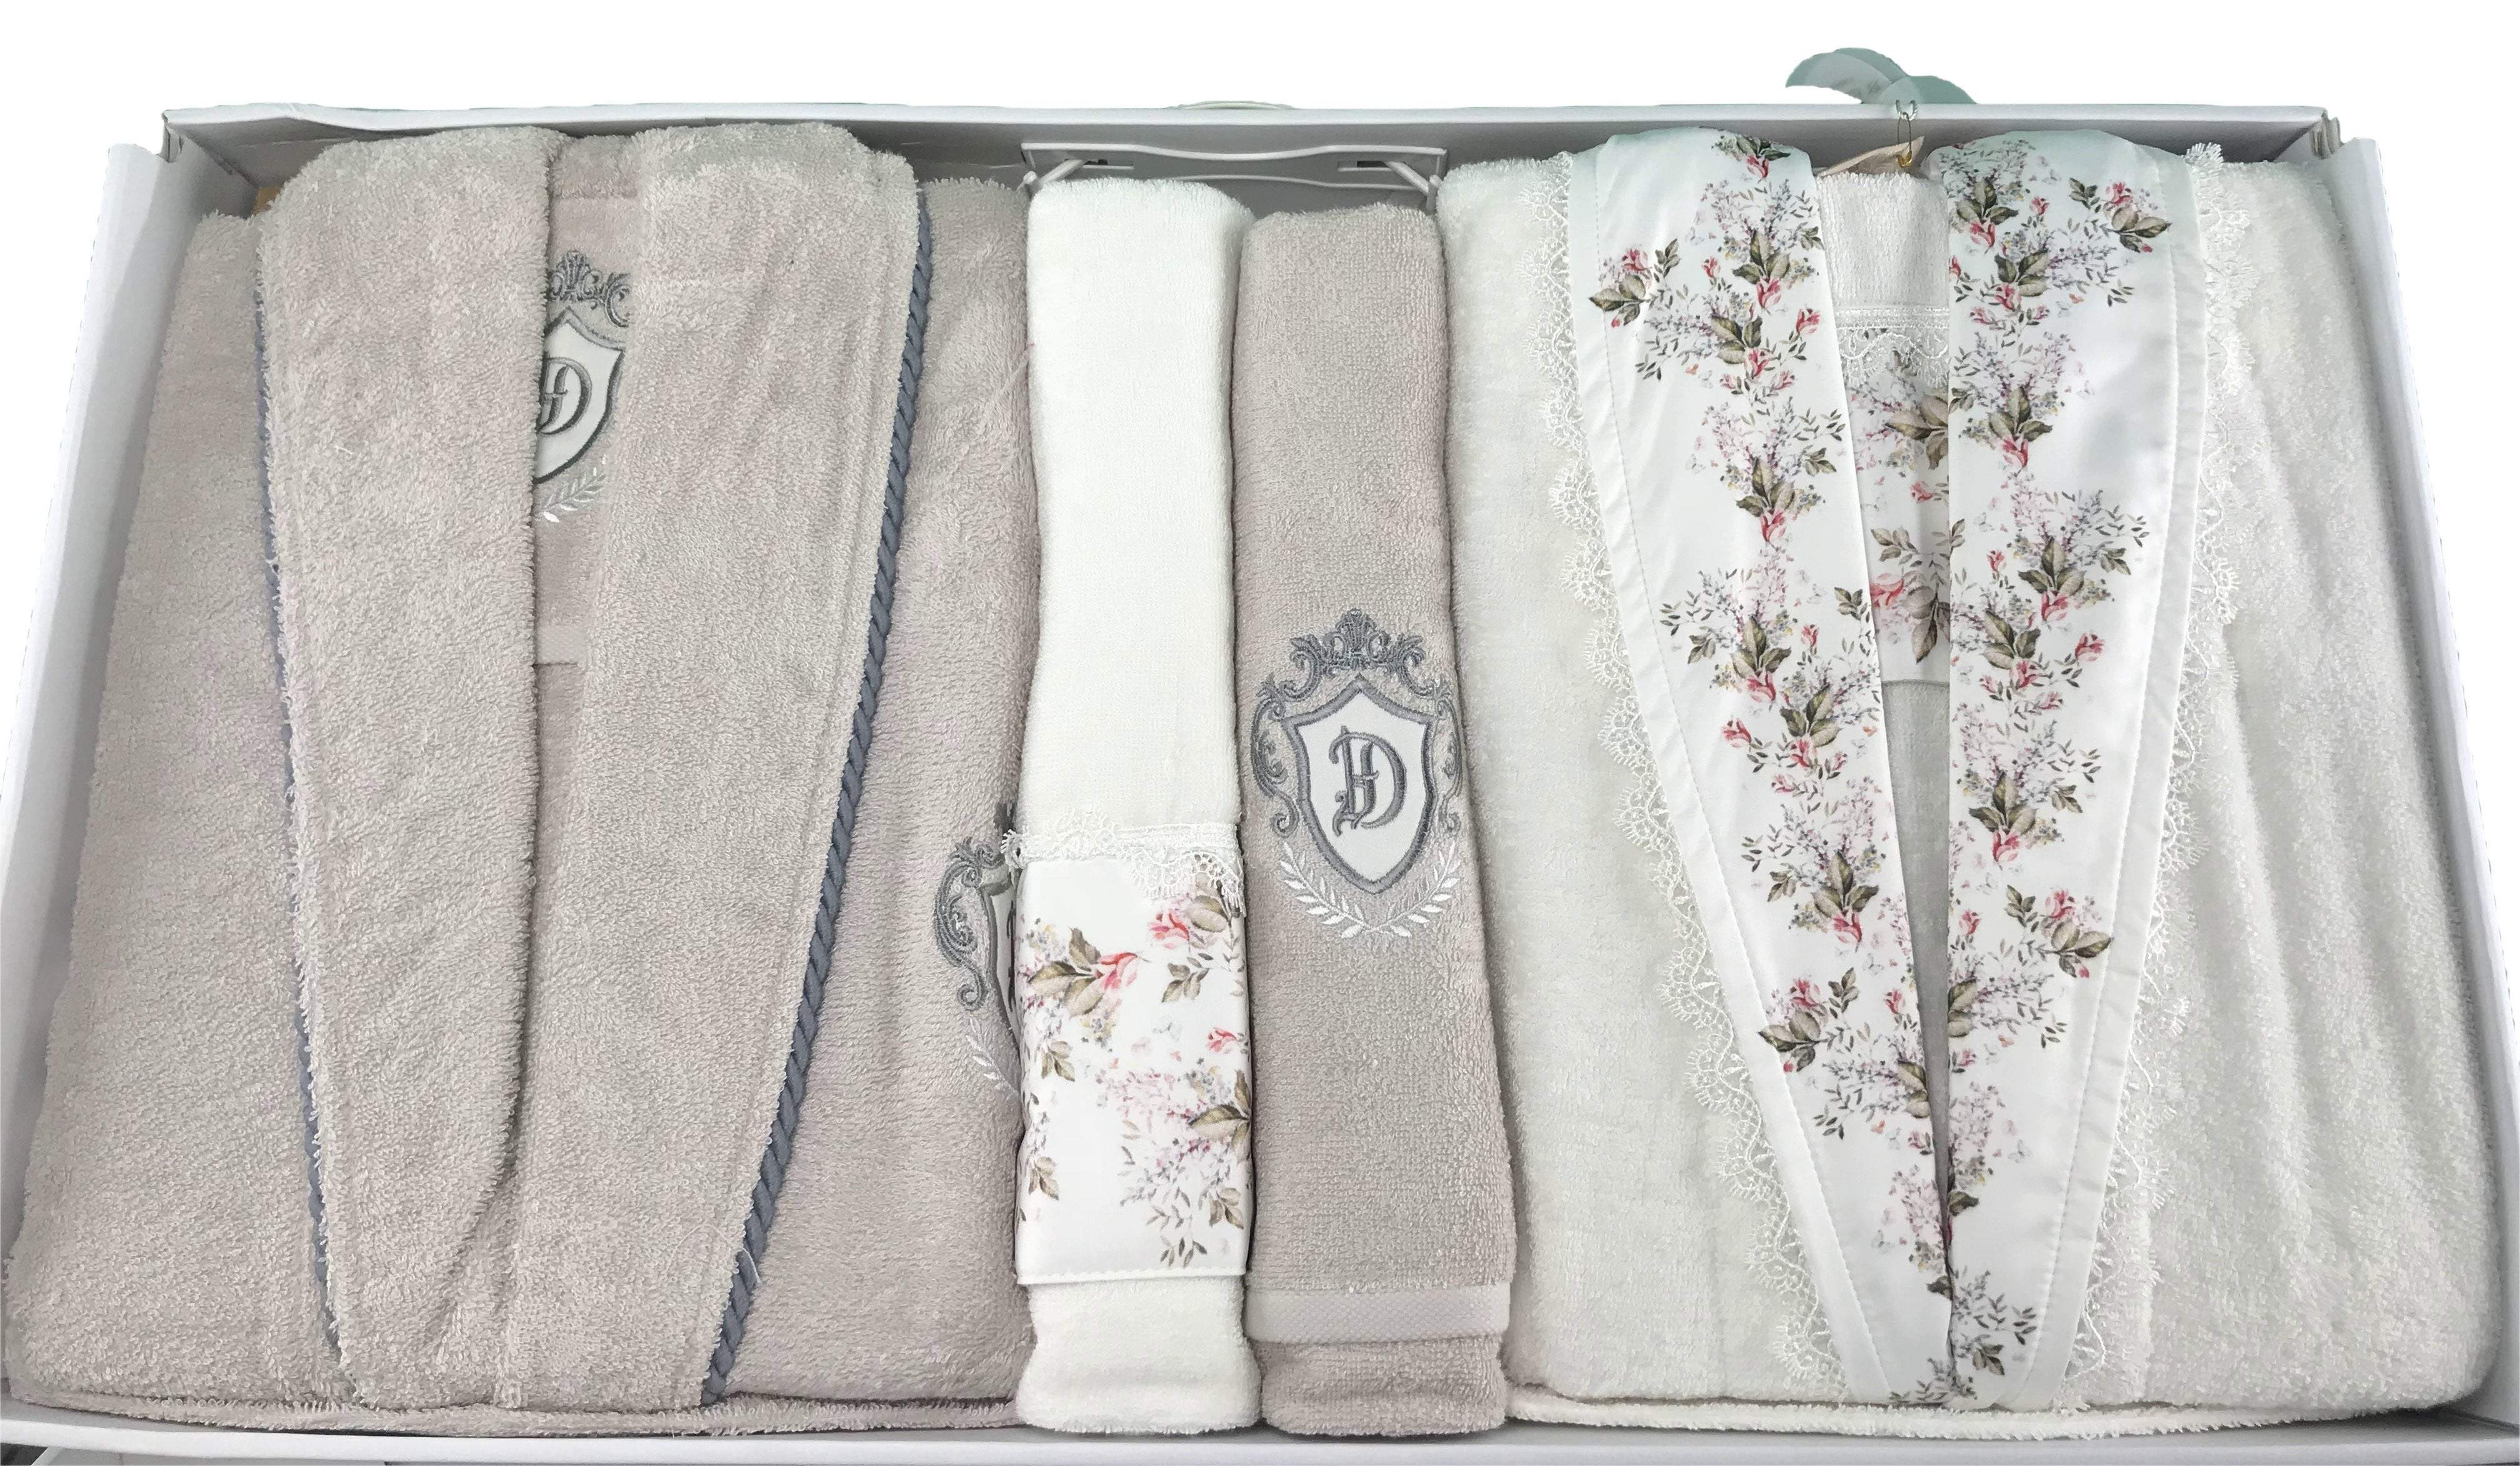 HALE Bathrobe Set